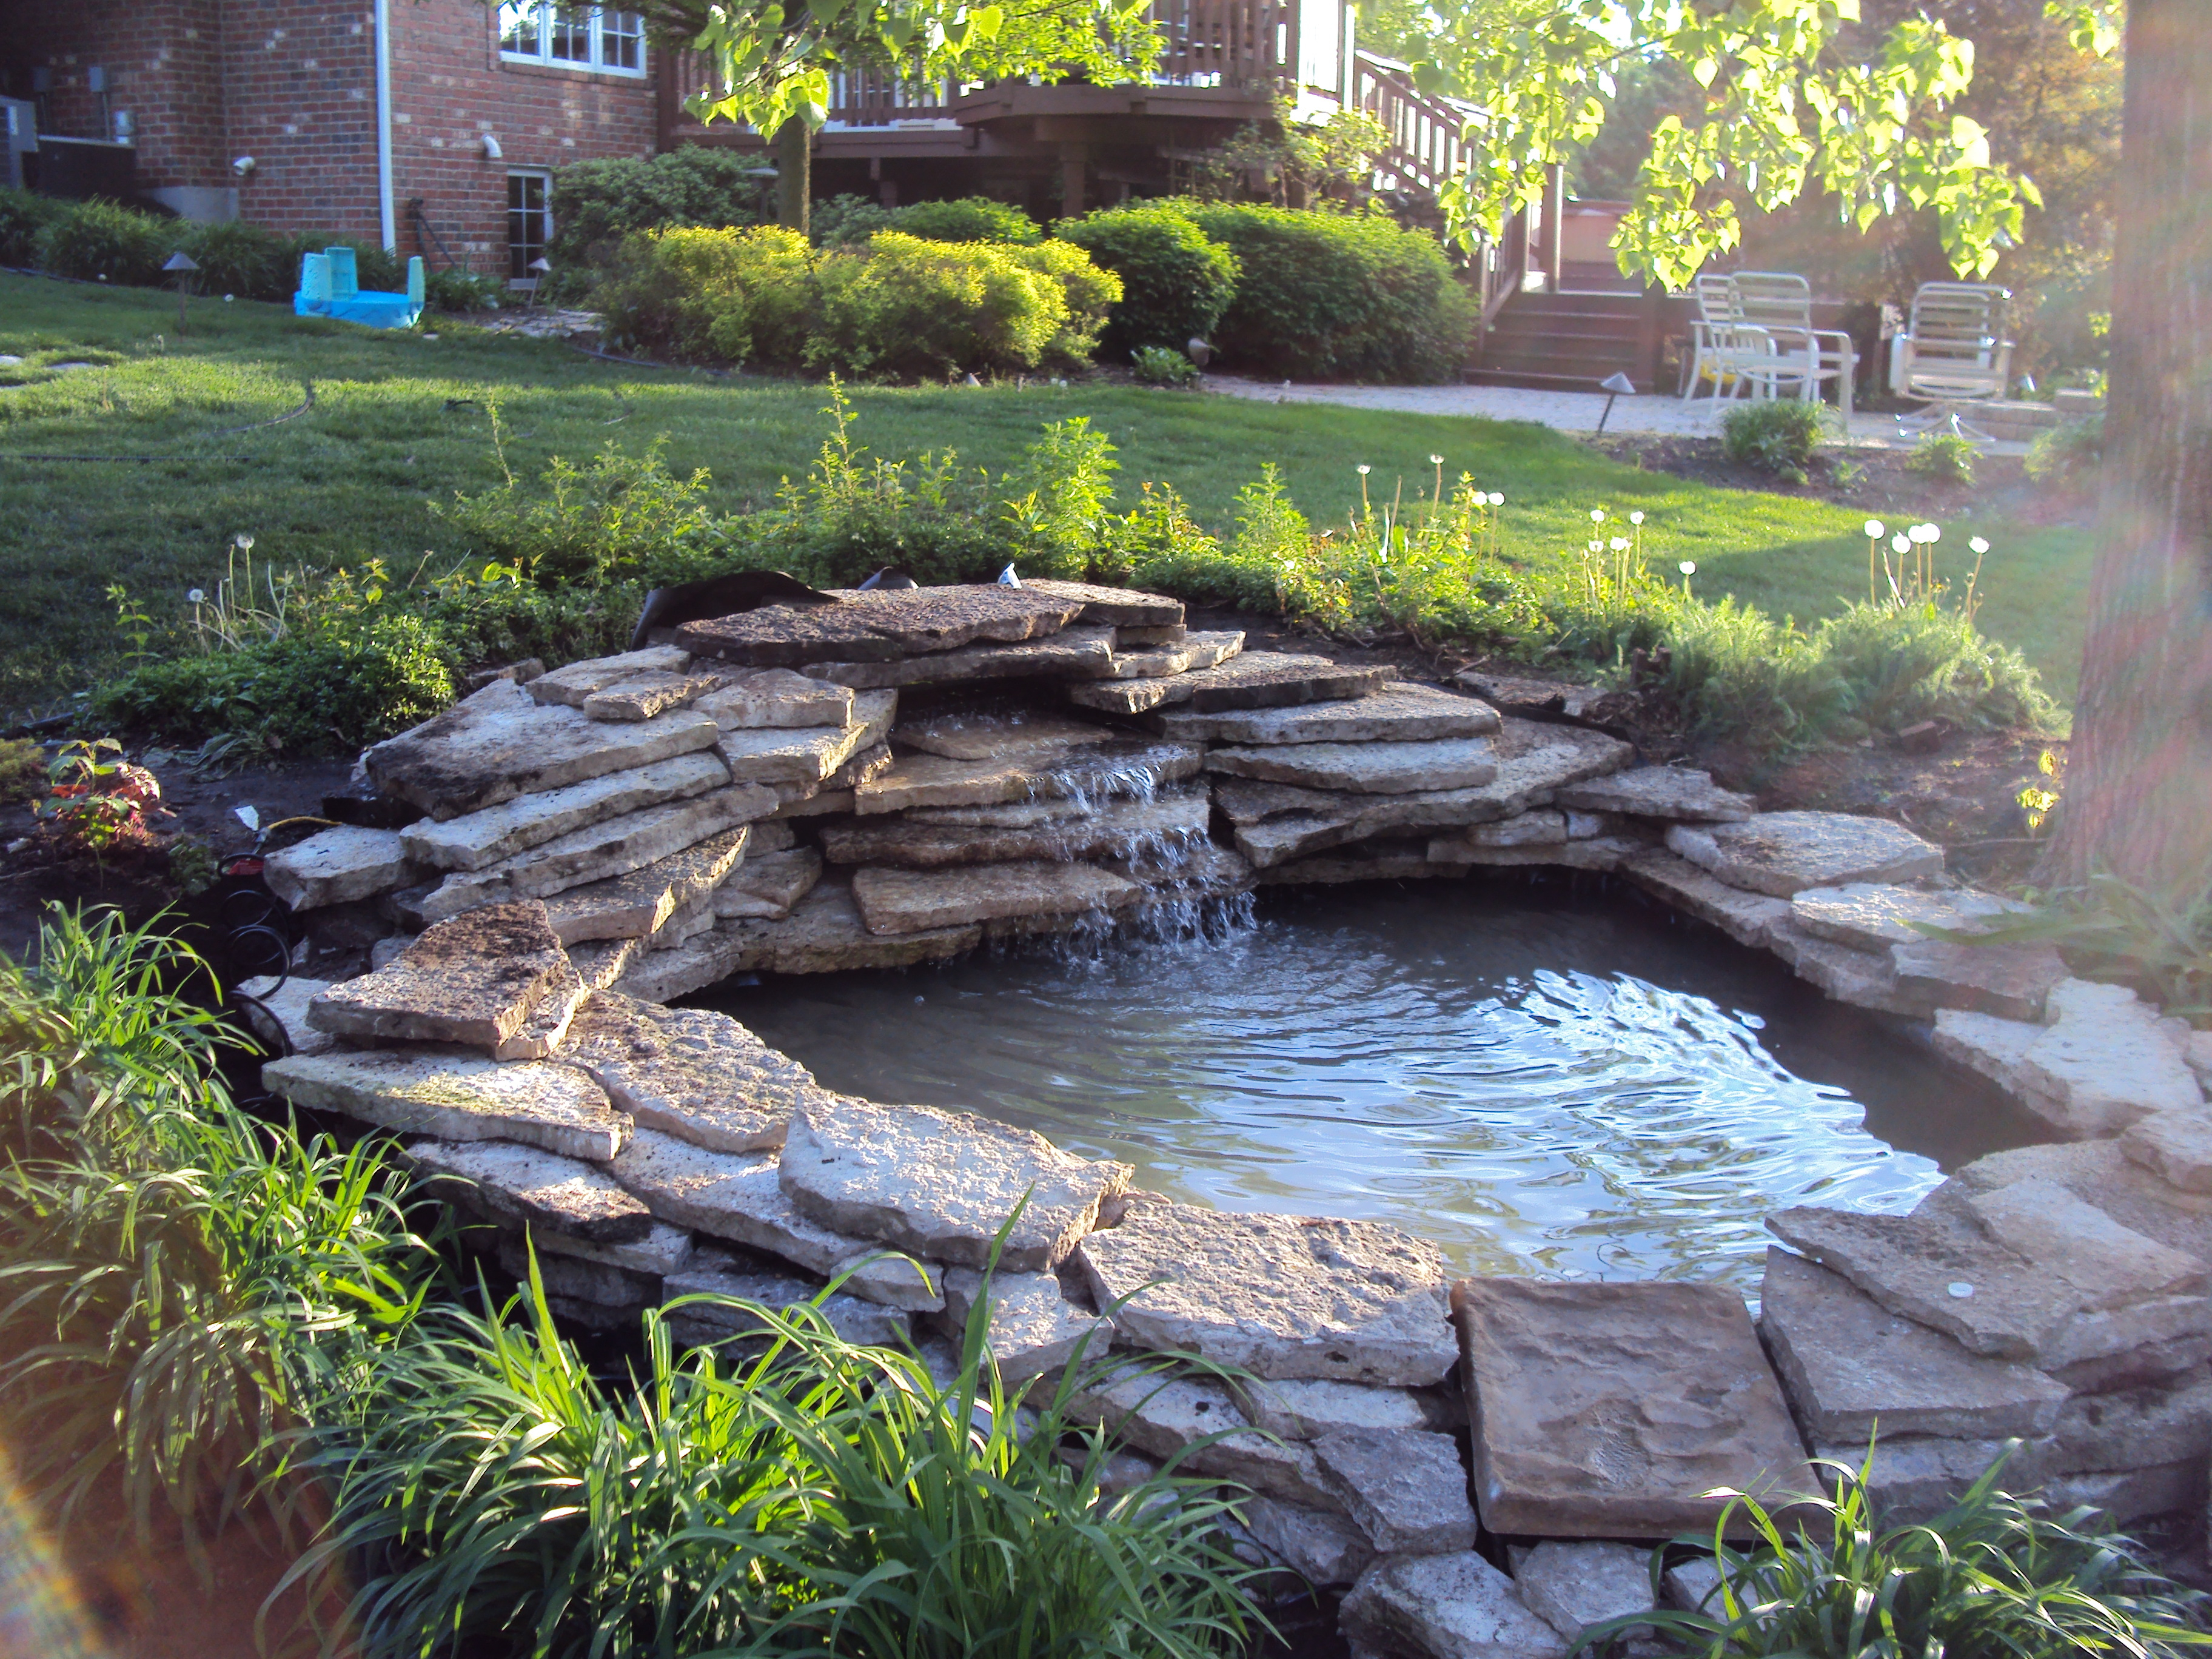 Backyard Pond Ideas Beautified Inexpensive Waterfall Tierra Este throughout Easy Backyard Pond Ideas